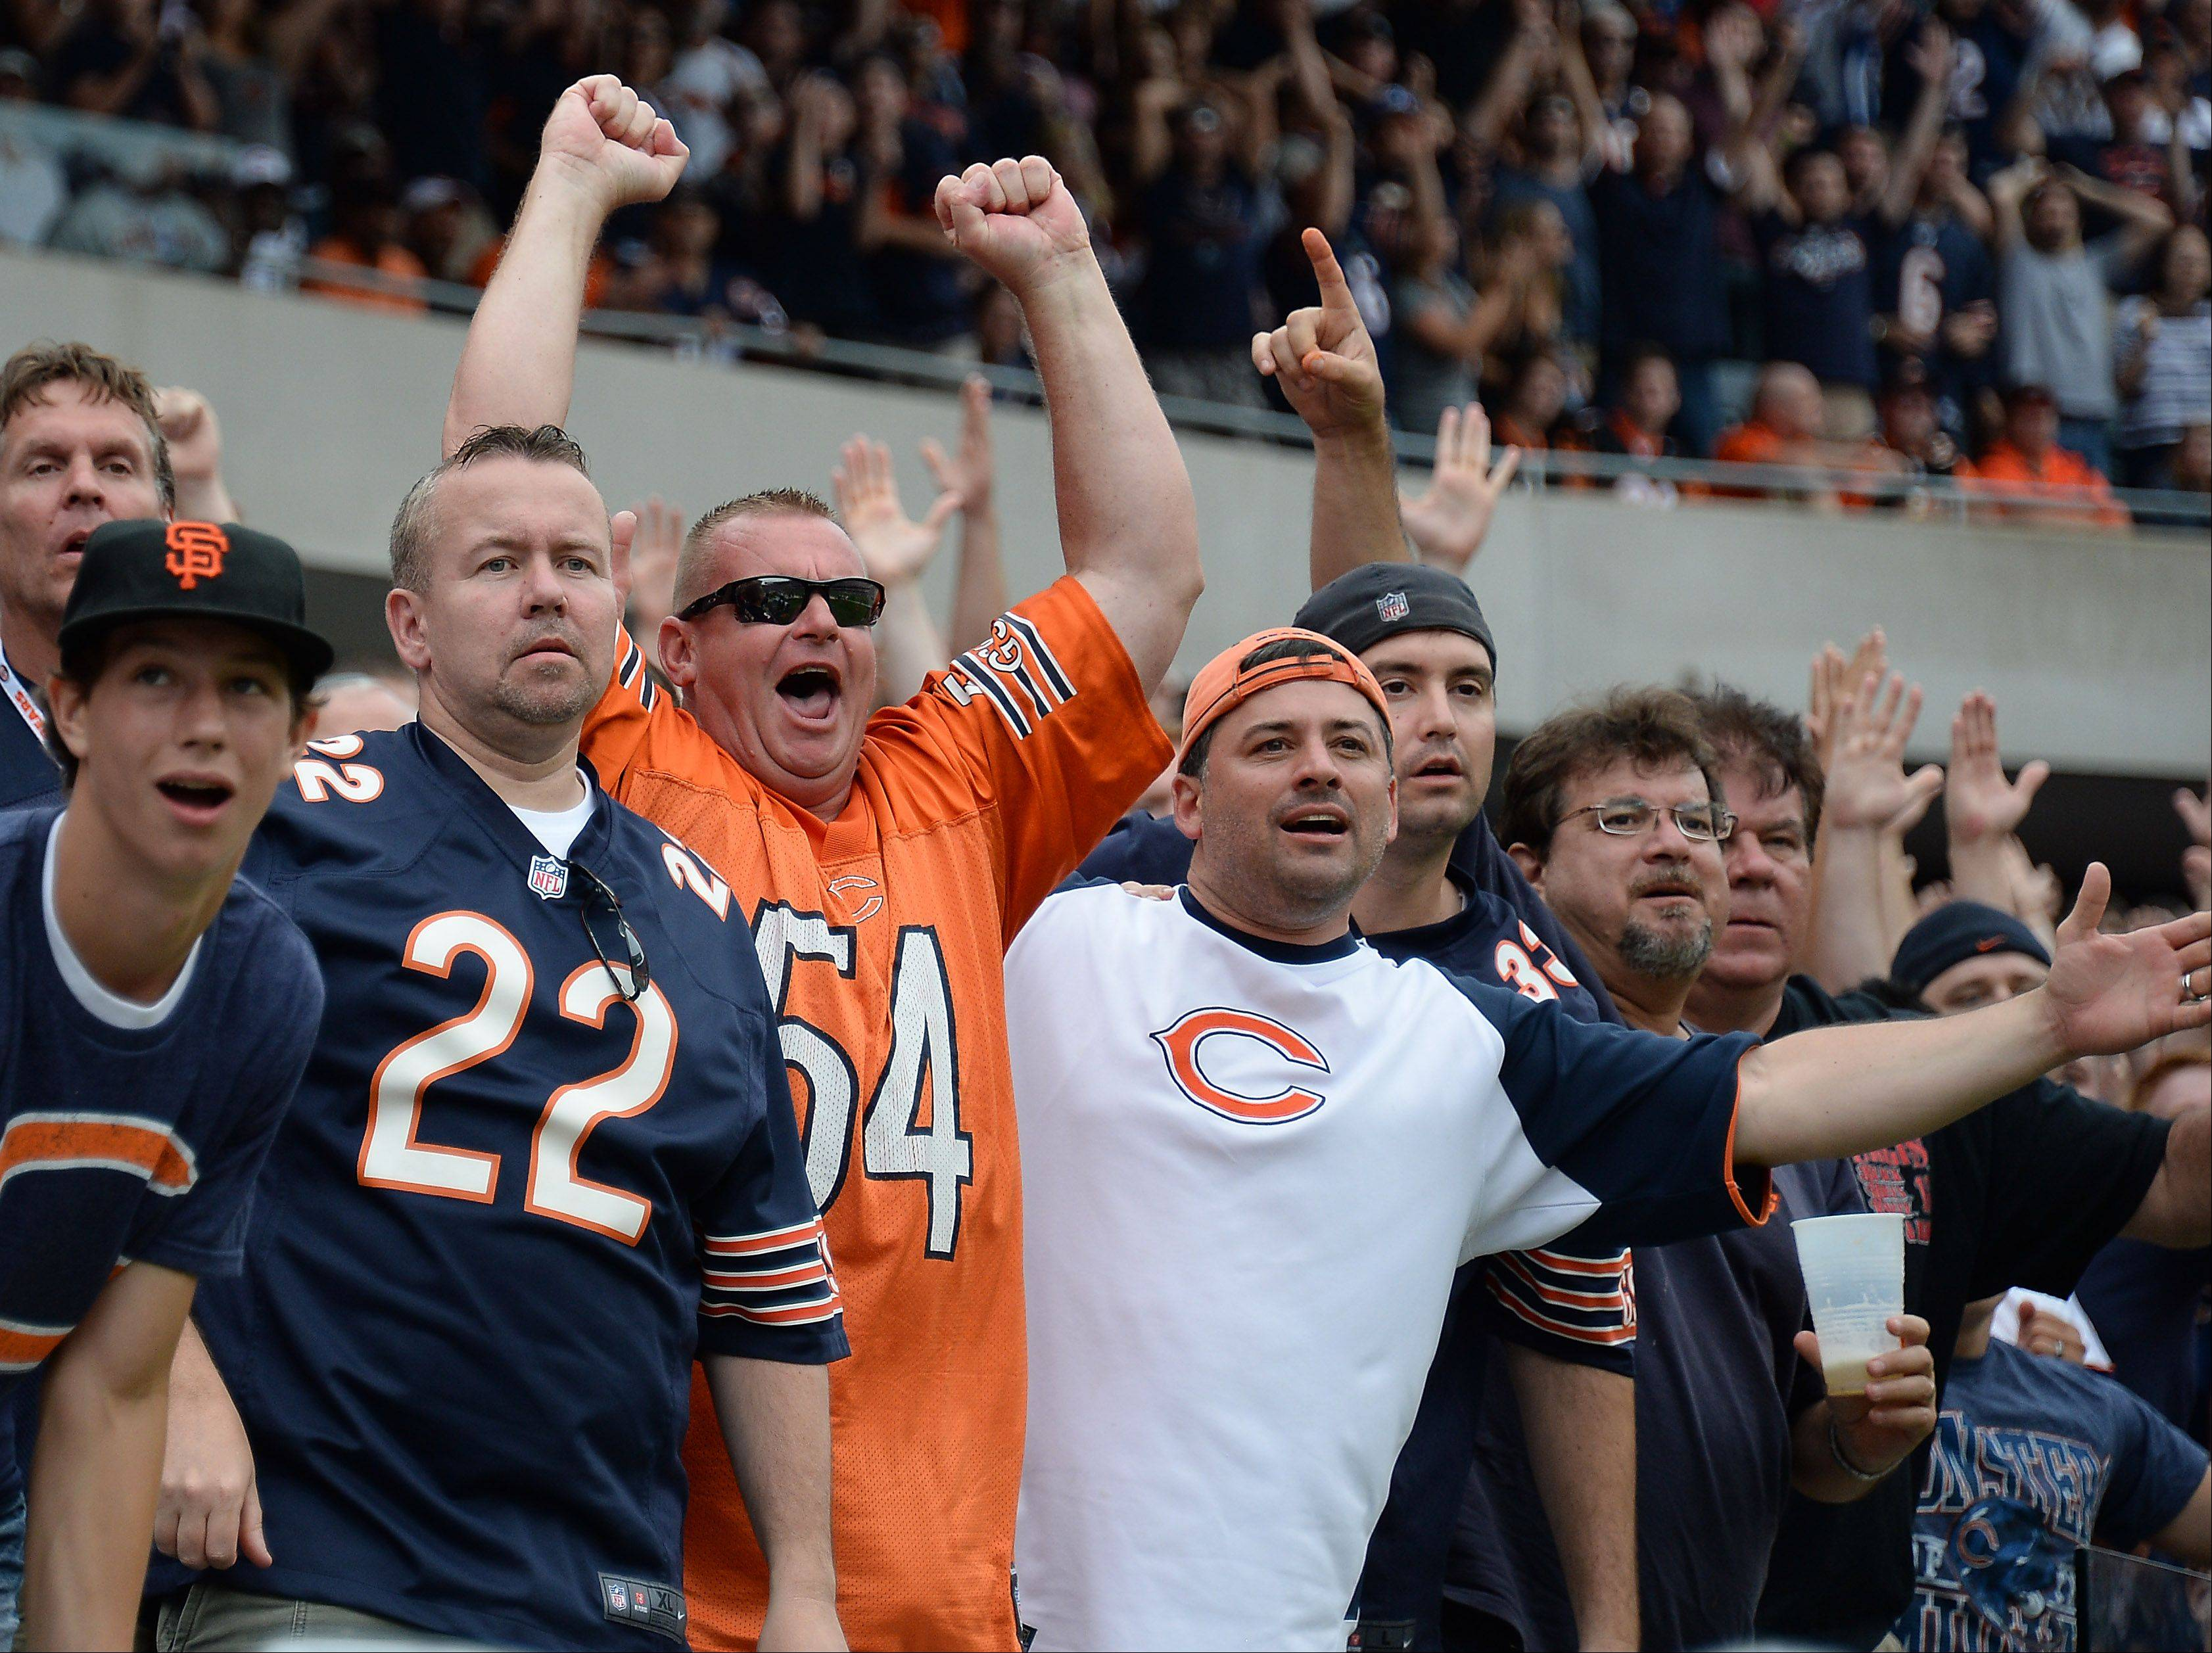 Chicago Bears fans celebrate the season opener victory against the Cincinnati Bengals at Soldier Field in Chicago on Sunday.